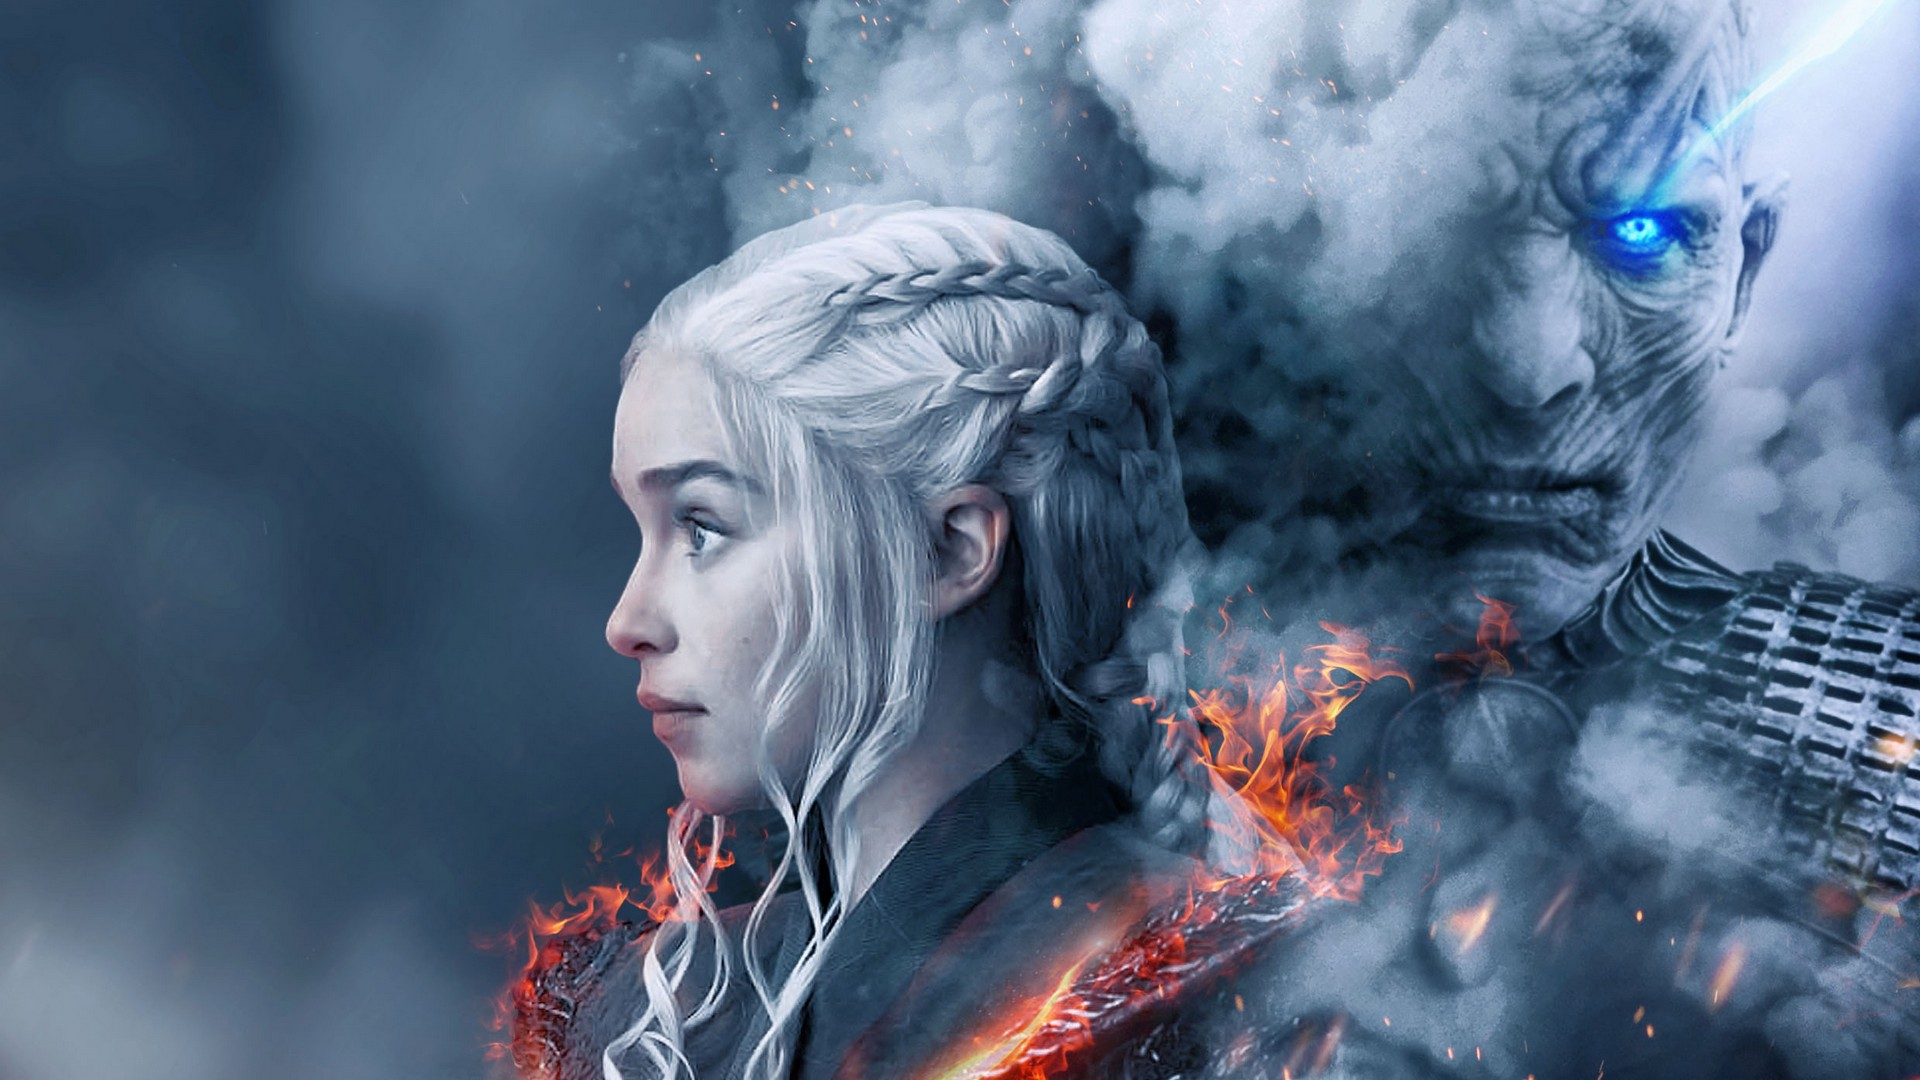 Game of Thrones 8 Season Movies Wallpaper HD 2020 Movie Poster 1920x1080